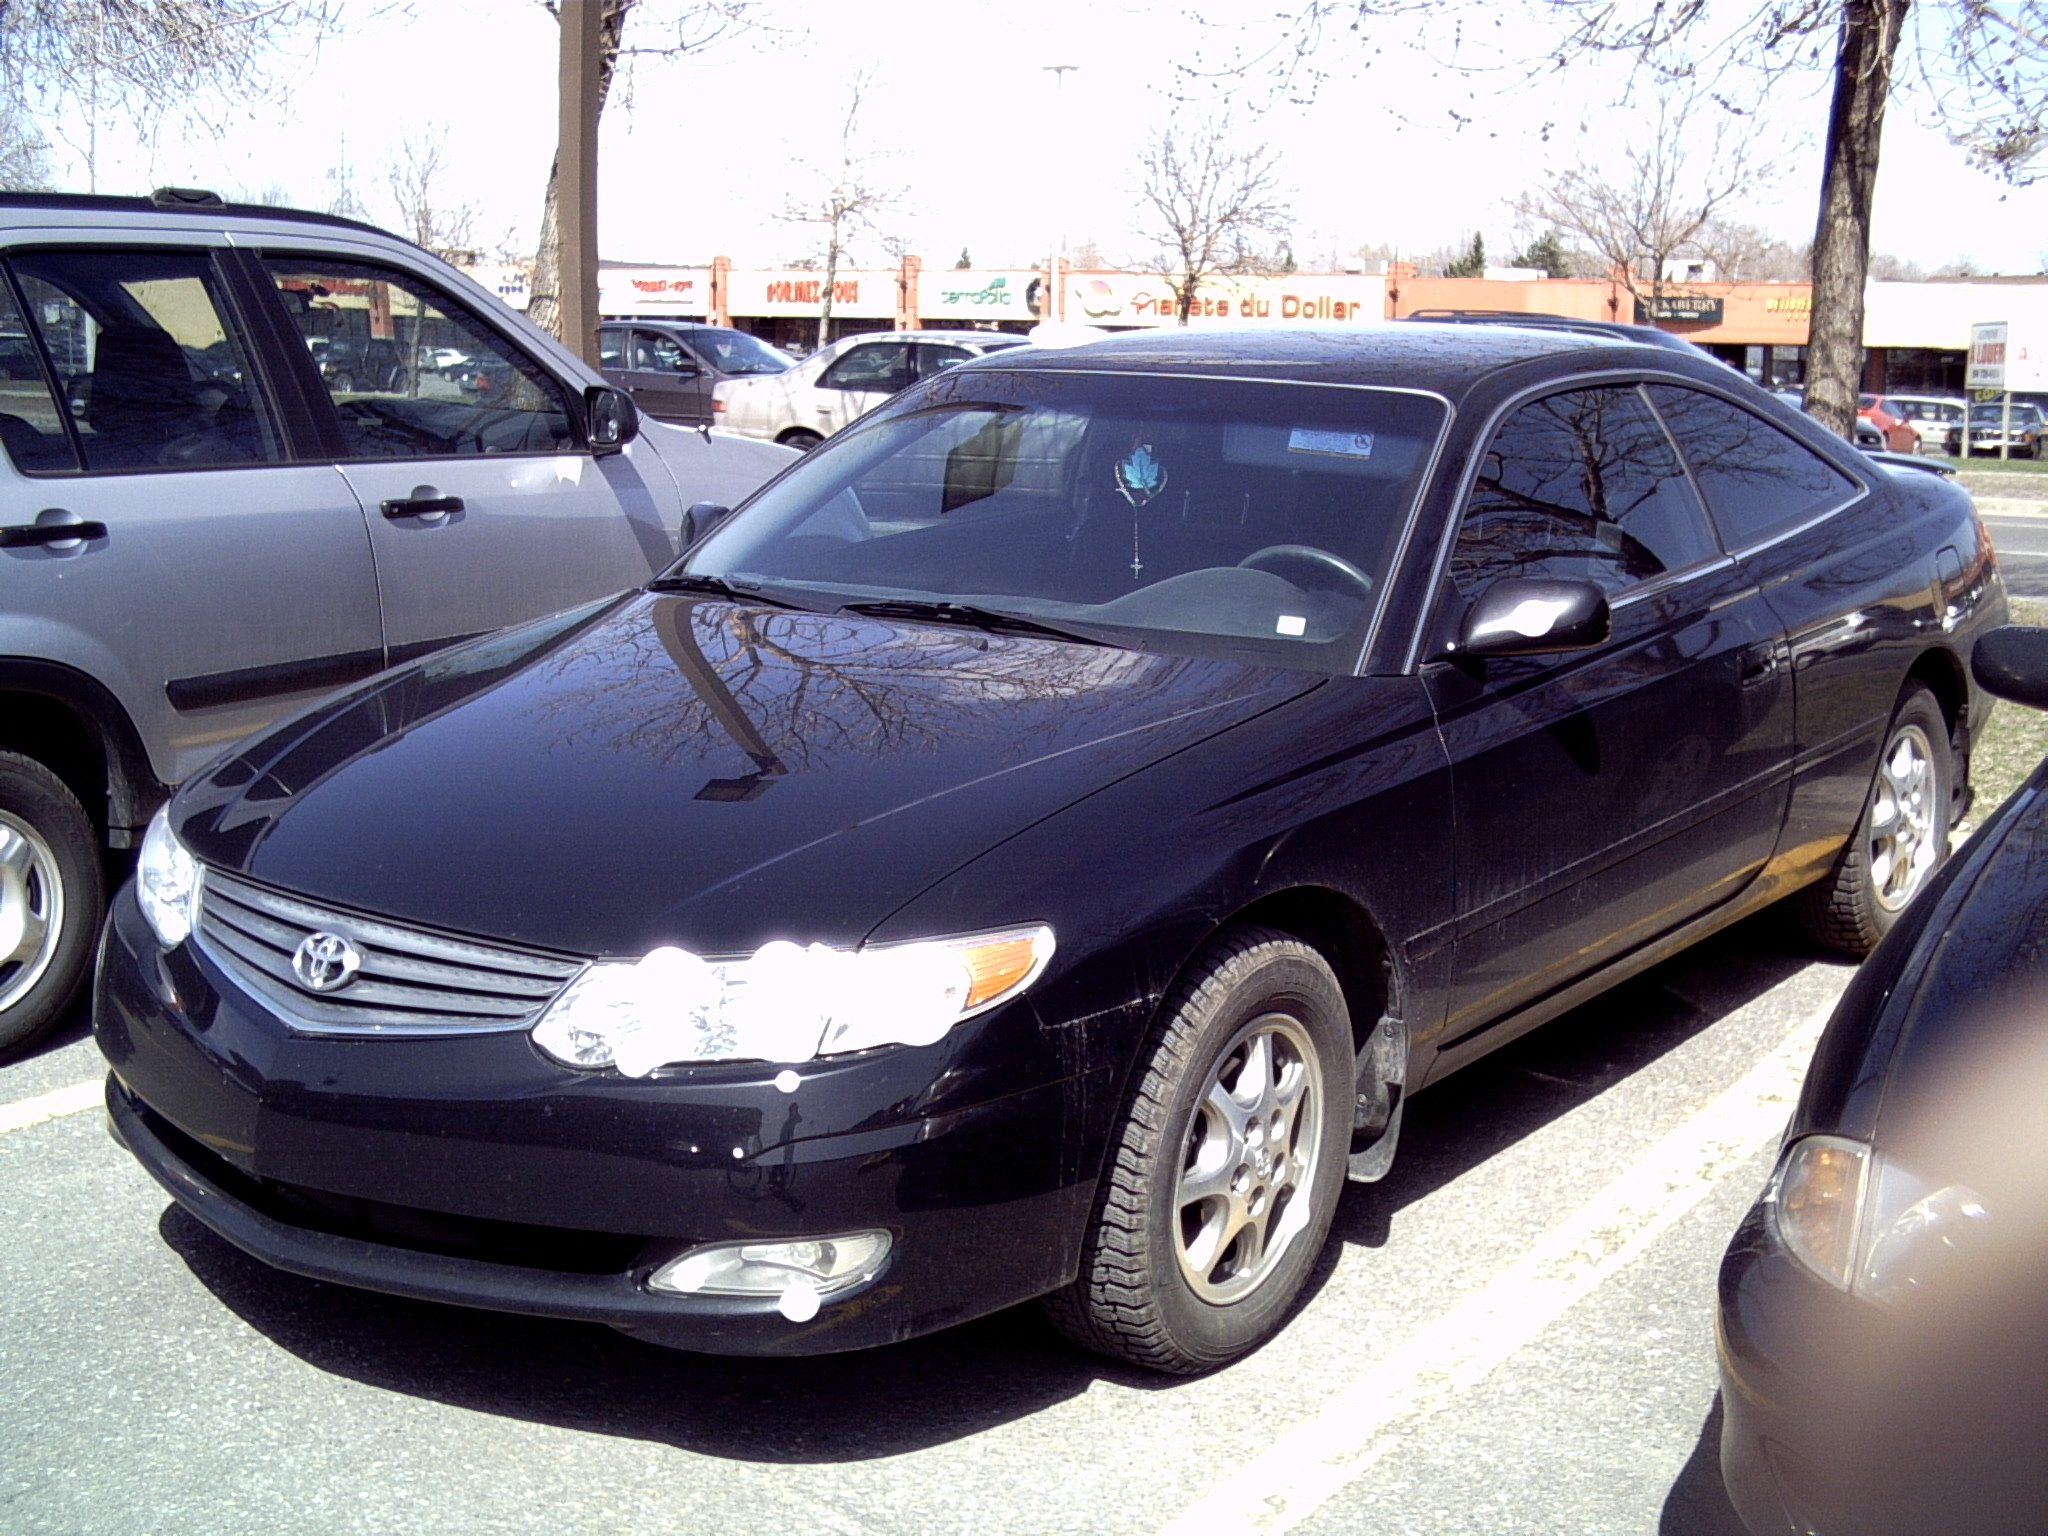 2004 toyota solara owner 39 s manual submited images